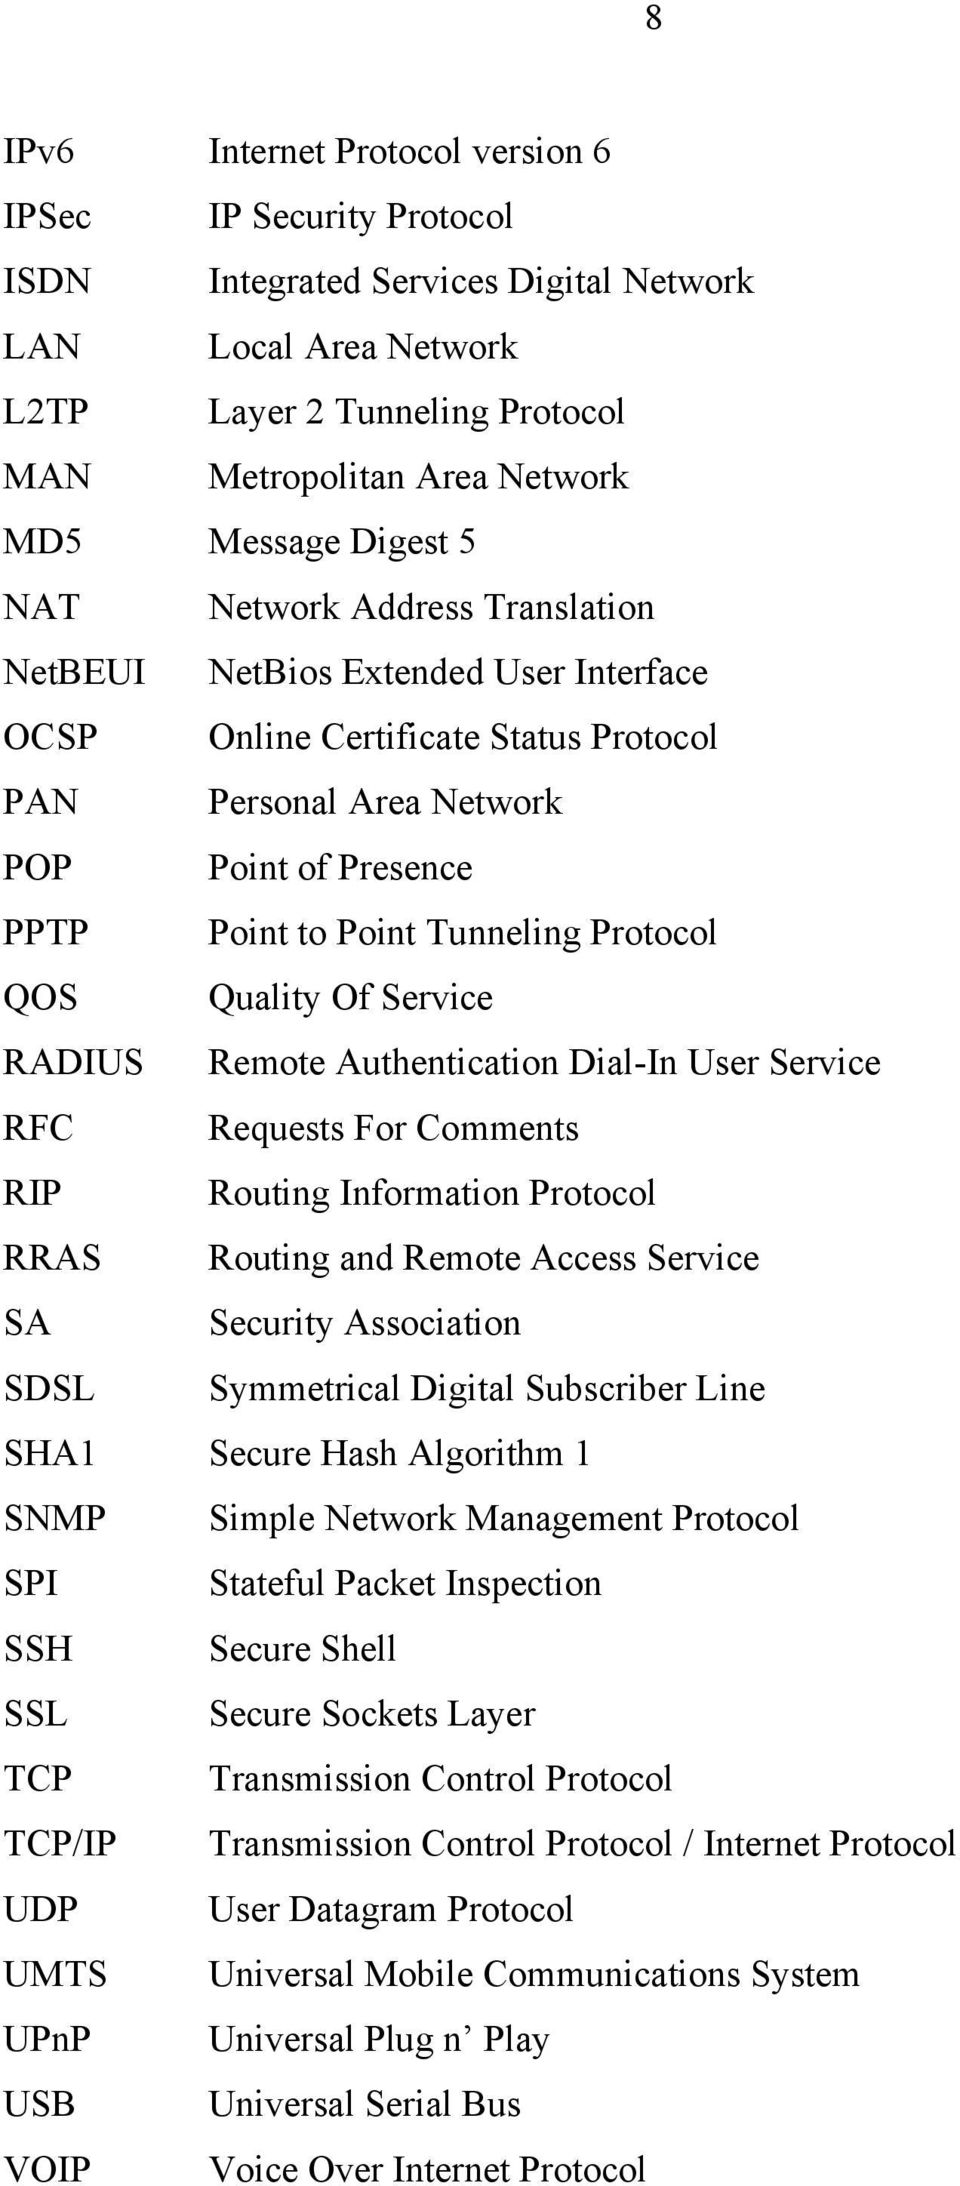 Protocol QOS Quality Of Service RADIUS Remote Authentication Dial-In User Service RFC Requests For Comments RIP Routing Information Protocol RRAS Routing and Remote Access Service SA Security